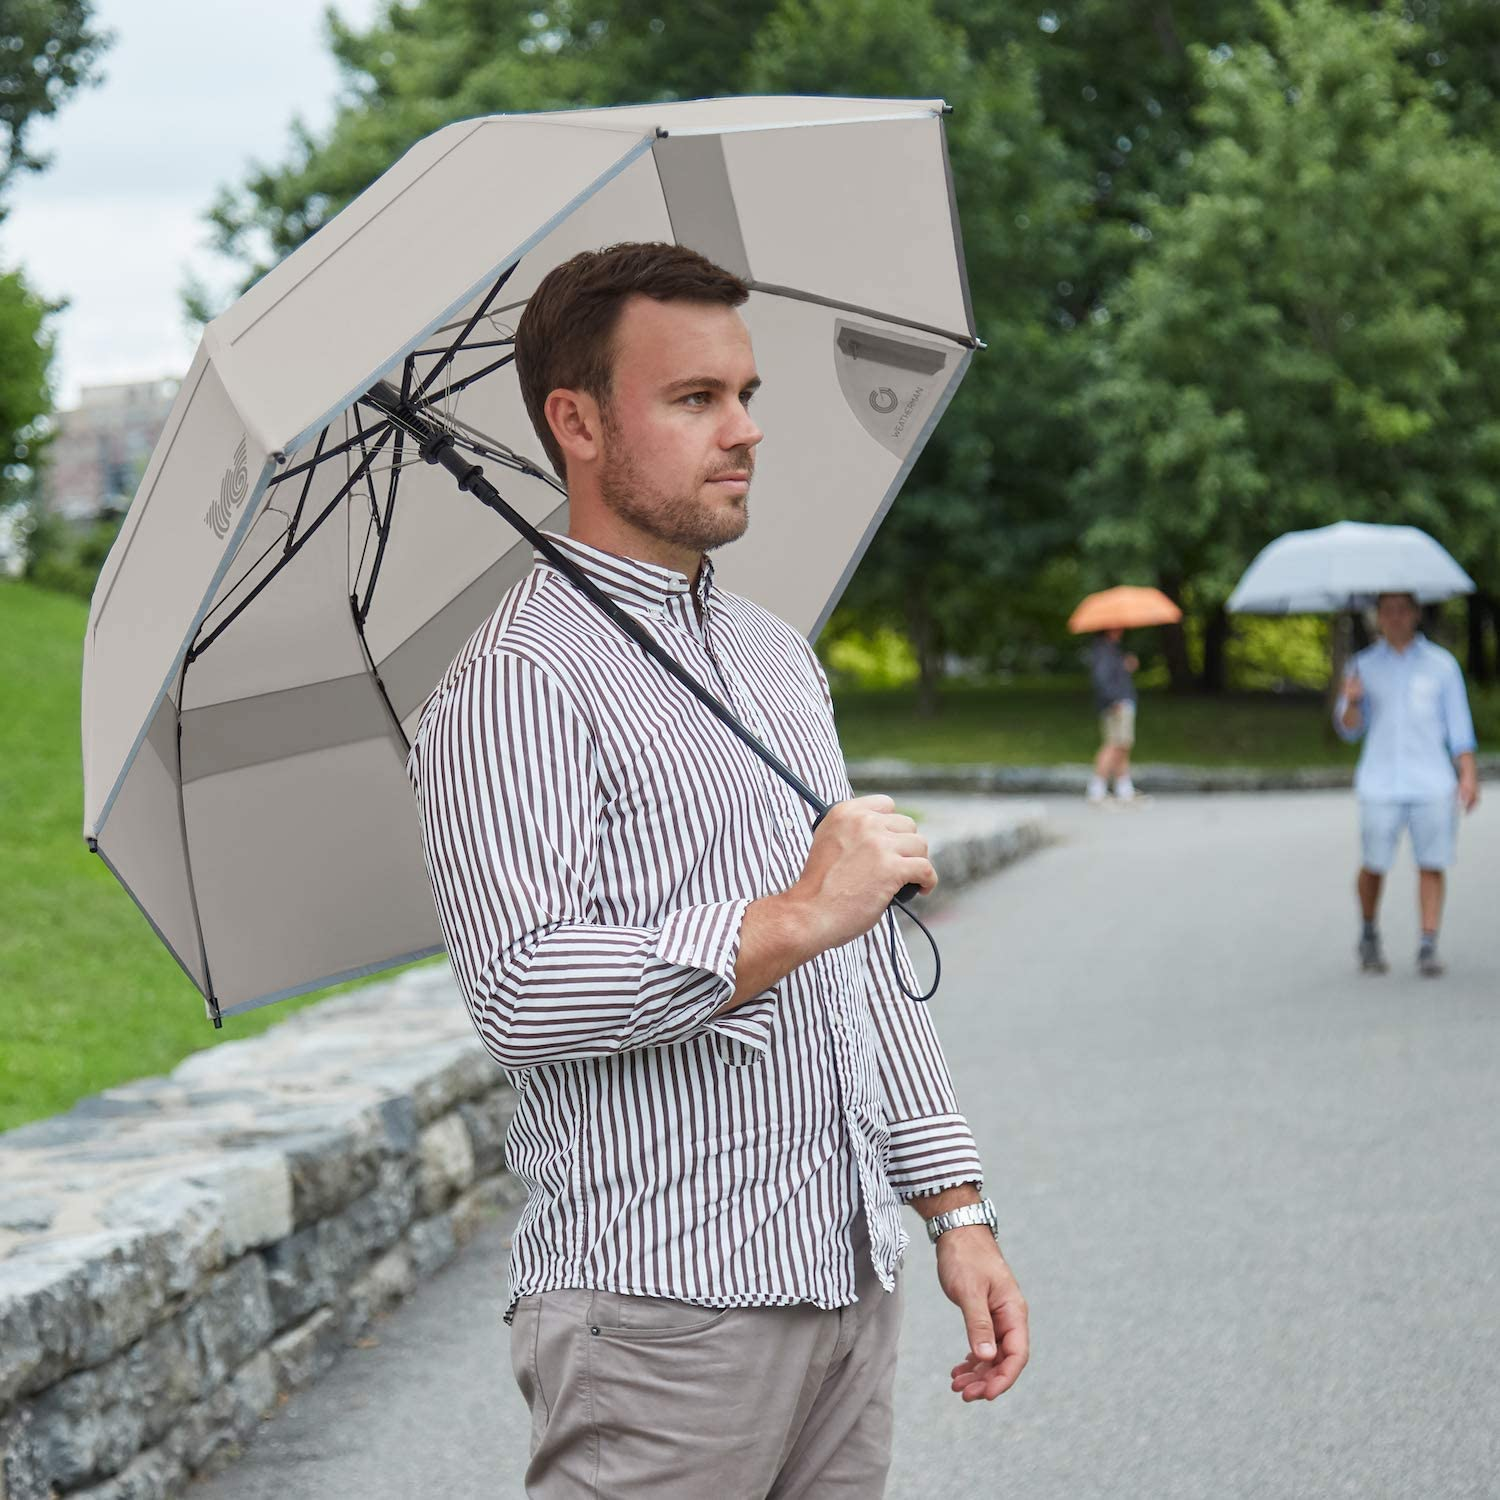 The Weatherman Umbrella Built to Withstand Winds Up to 55 MPH Available in 8 Colors Collapsible Umbrella Made with Teflon-Coated Fabric